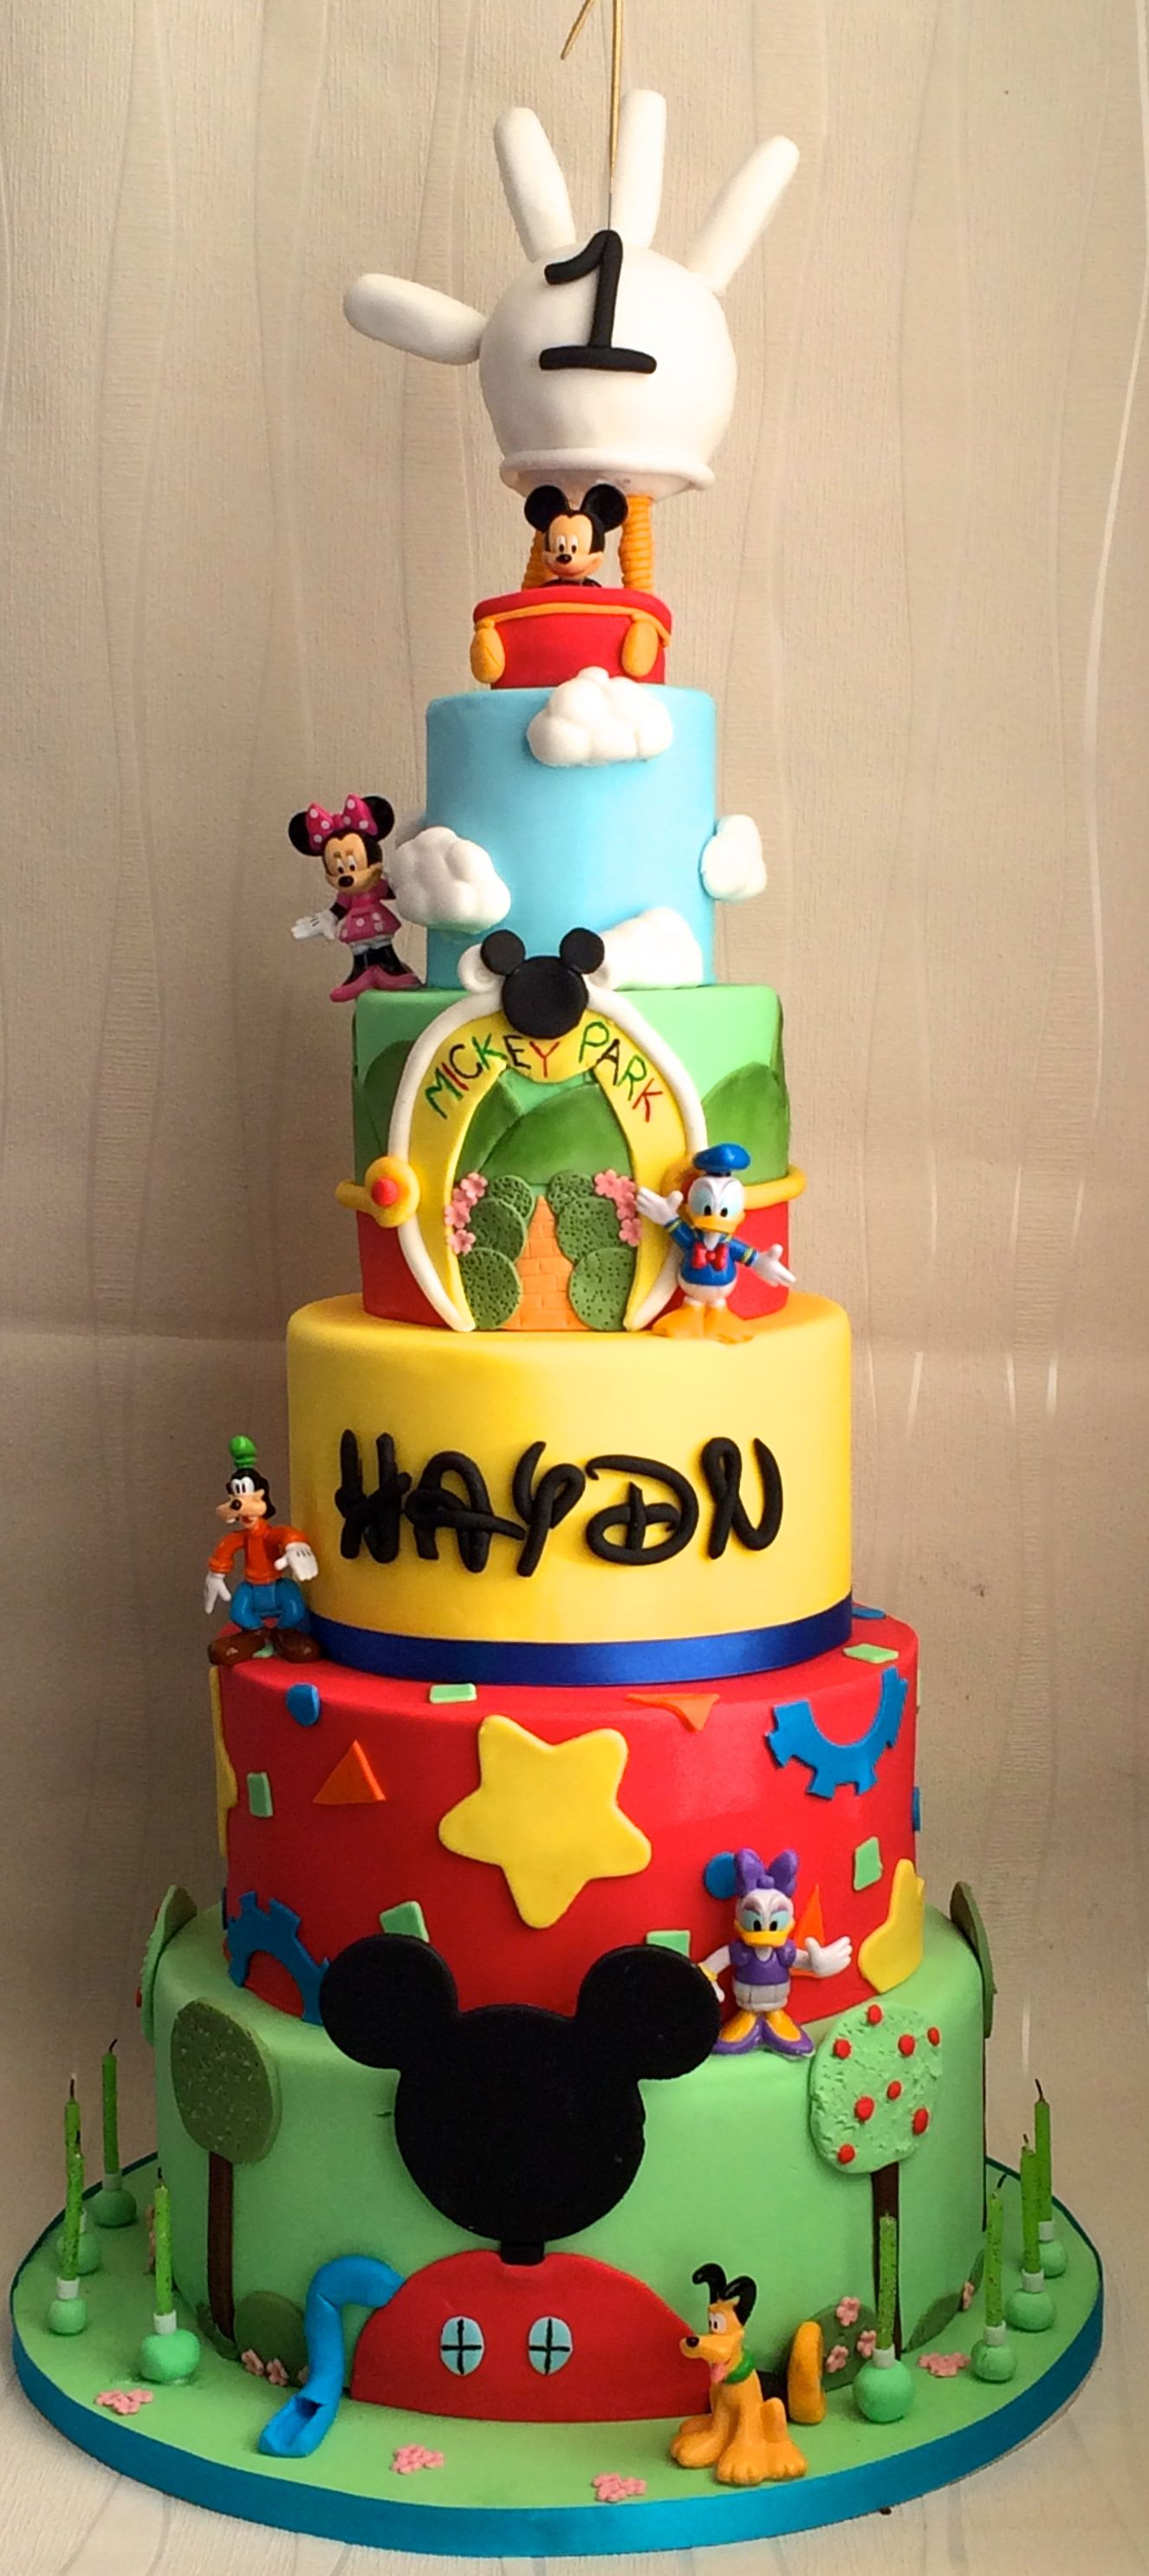 2973 In 35 Amazing Image Of Mickey Mouse Clubhouse Birthday Cakes